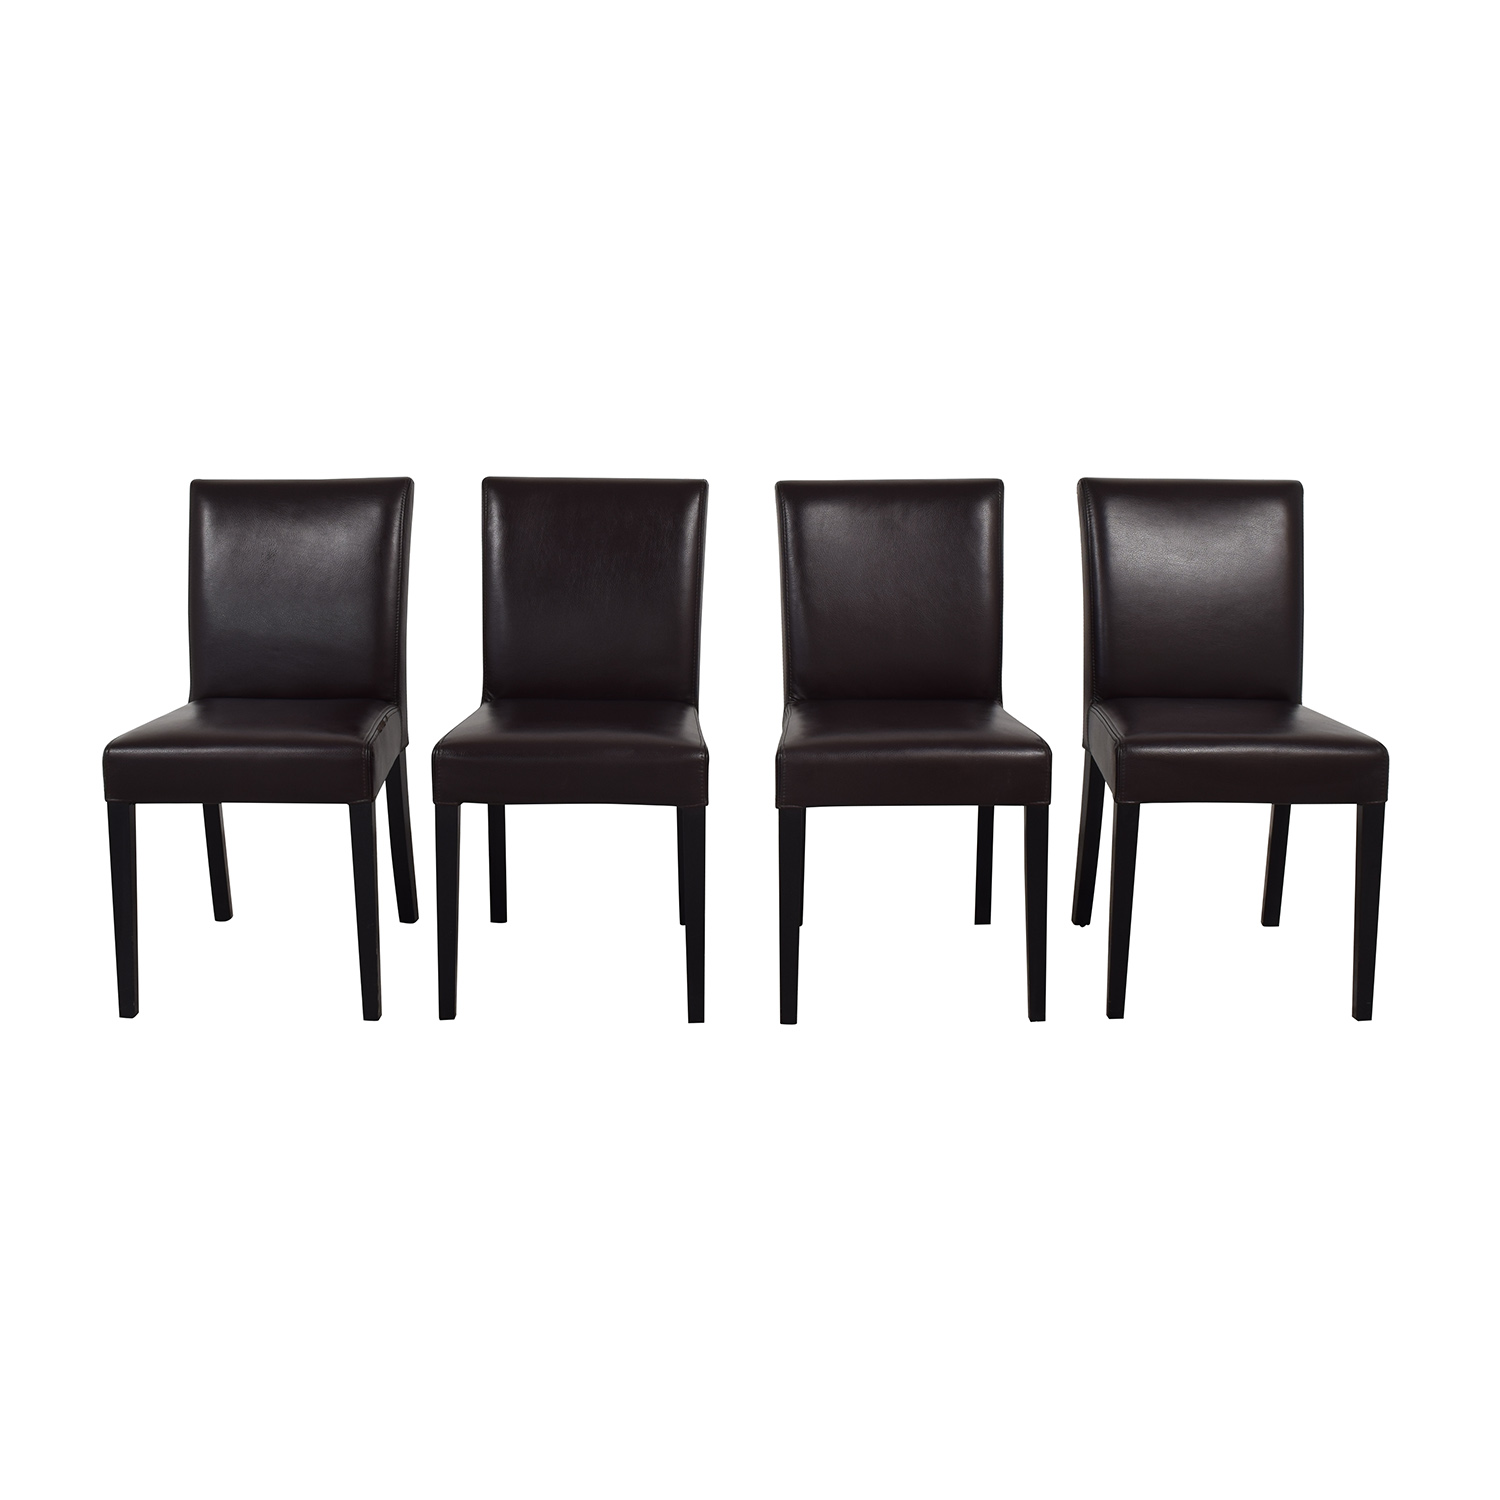 Crate & Barrel Lowe Dining Chairs / Chairs